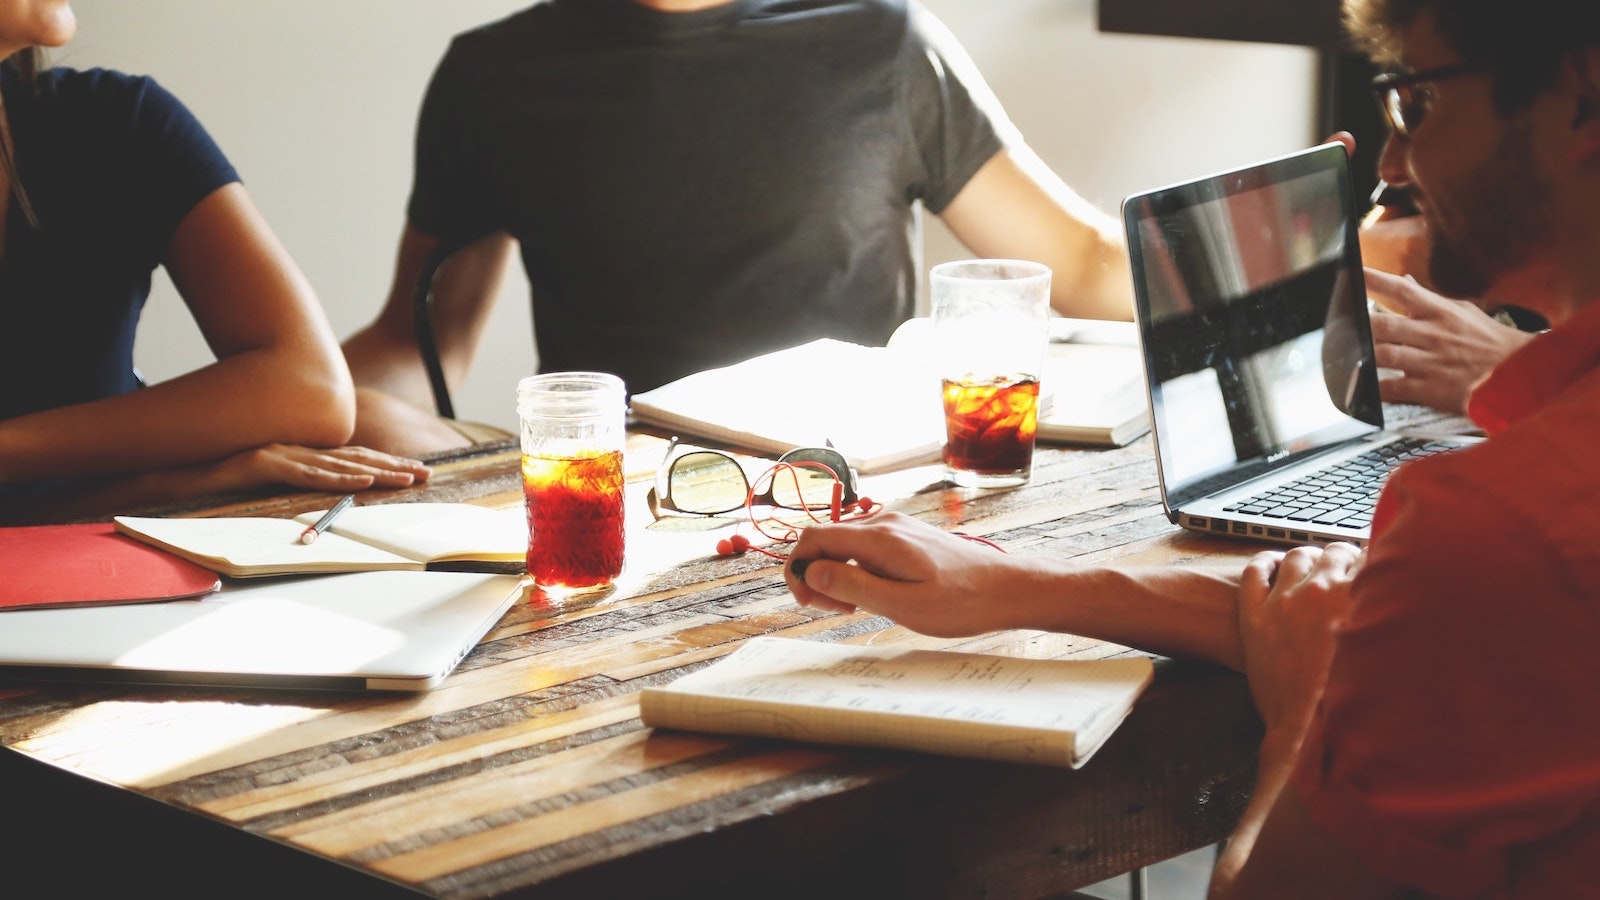 Meeting in a startup (Image: Startup Stock Photos from Pexels, C00 License)